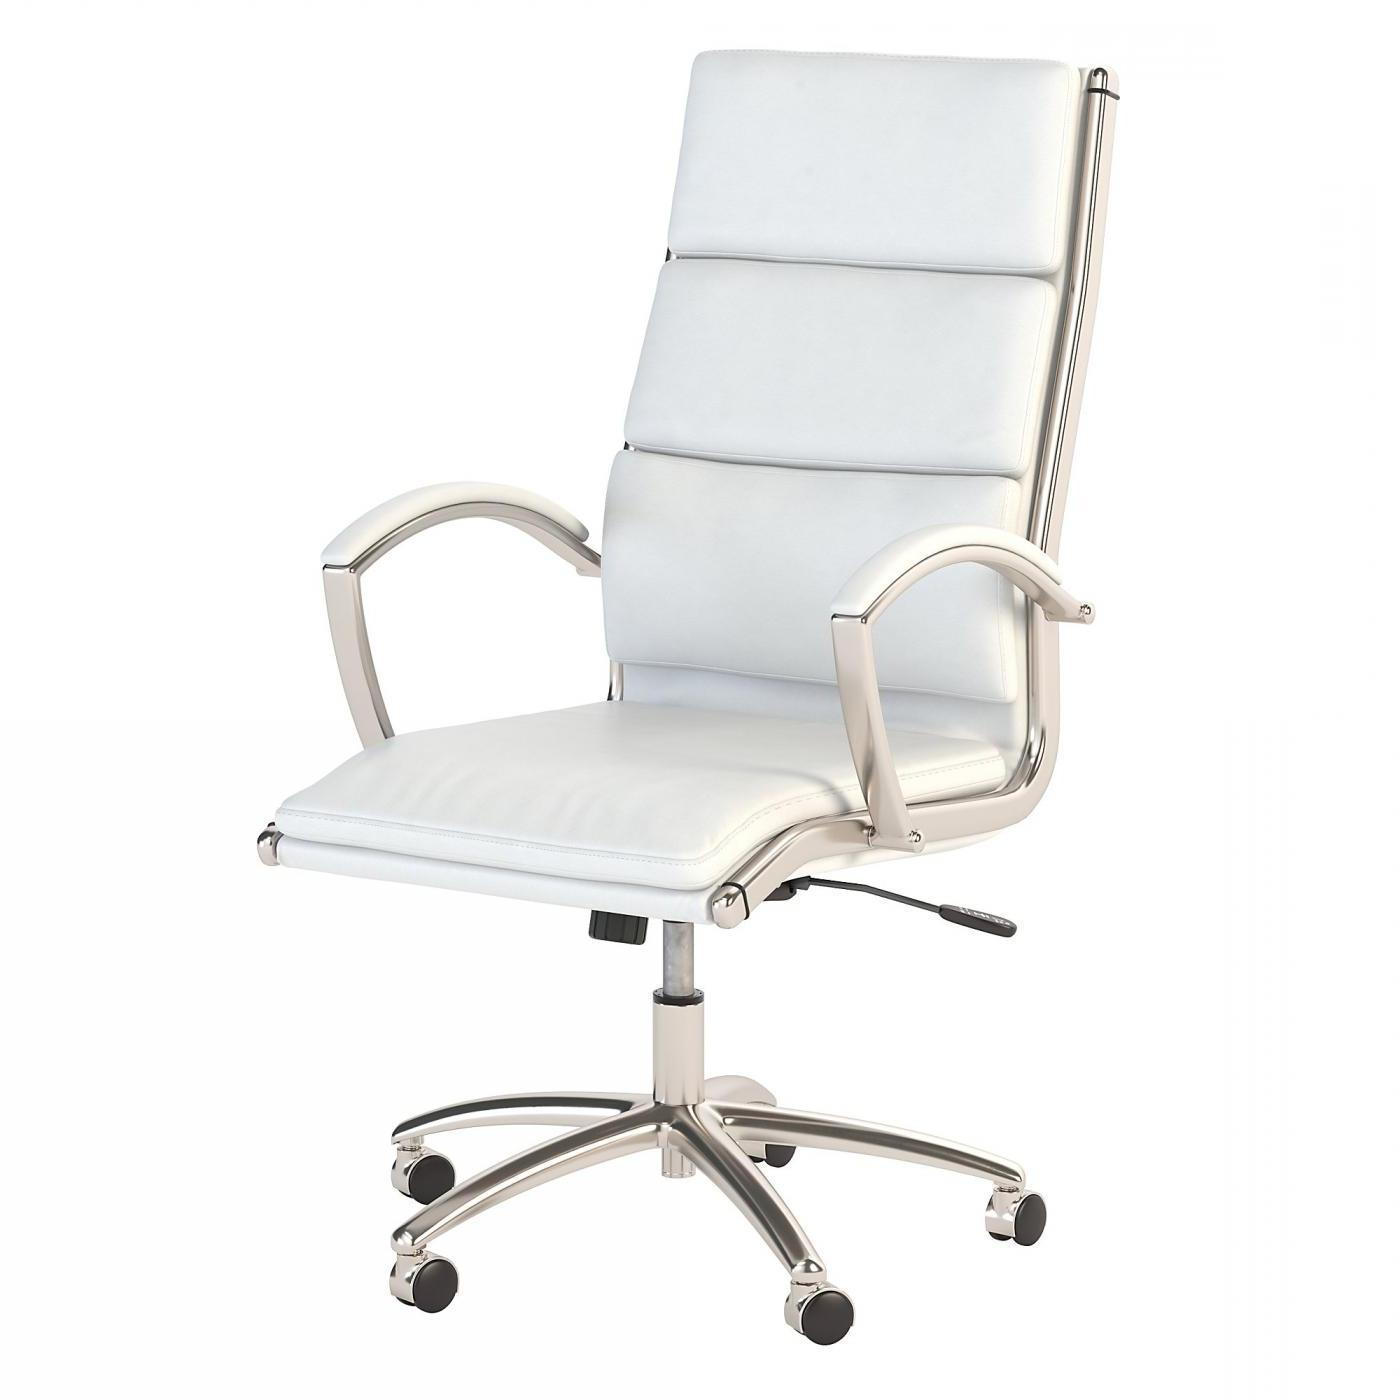 <font color=#c60><b>BUSH BUSINESS FURNITURE MODELO HIGH BACK LEATHER EXECUTIVE OFFICE CHAIR #EH-CH1701WHL-03. FREE SHIPPING:</font></b> </font></b></font></b>